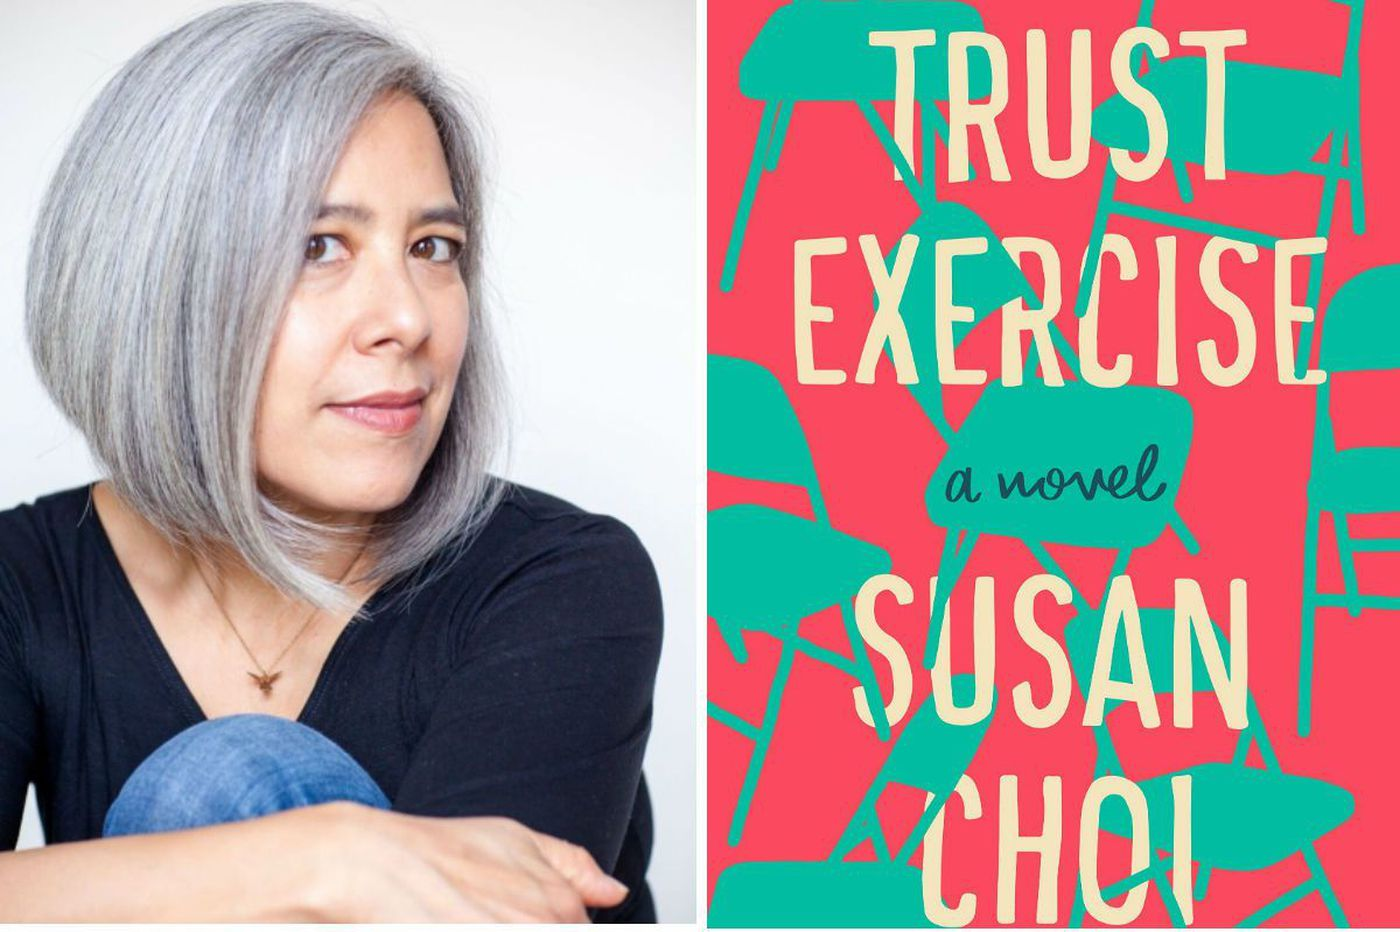 Susan Choi's 'Trust Exercise': Letter-perfect satire of the highs and humiliations of adolescence